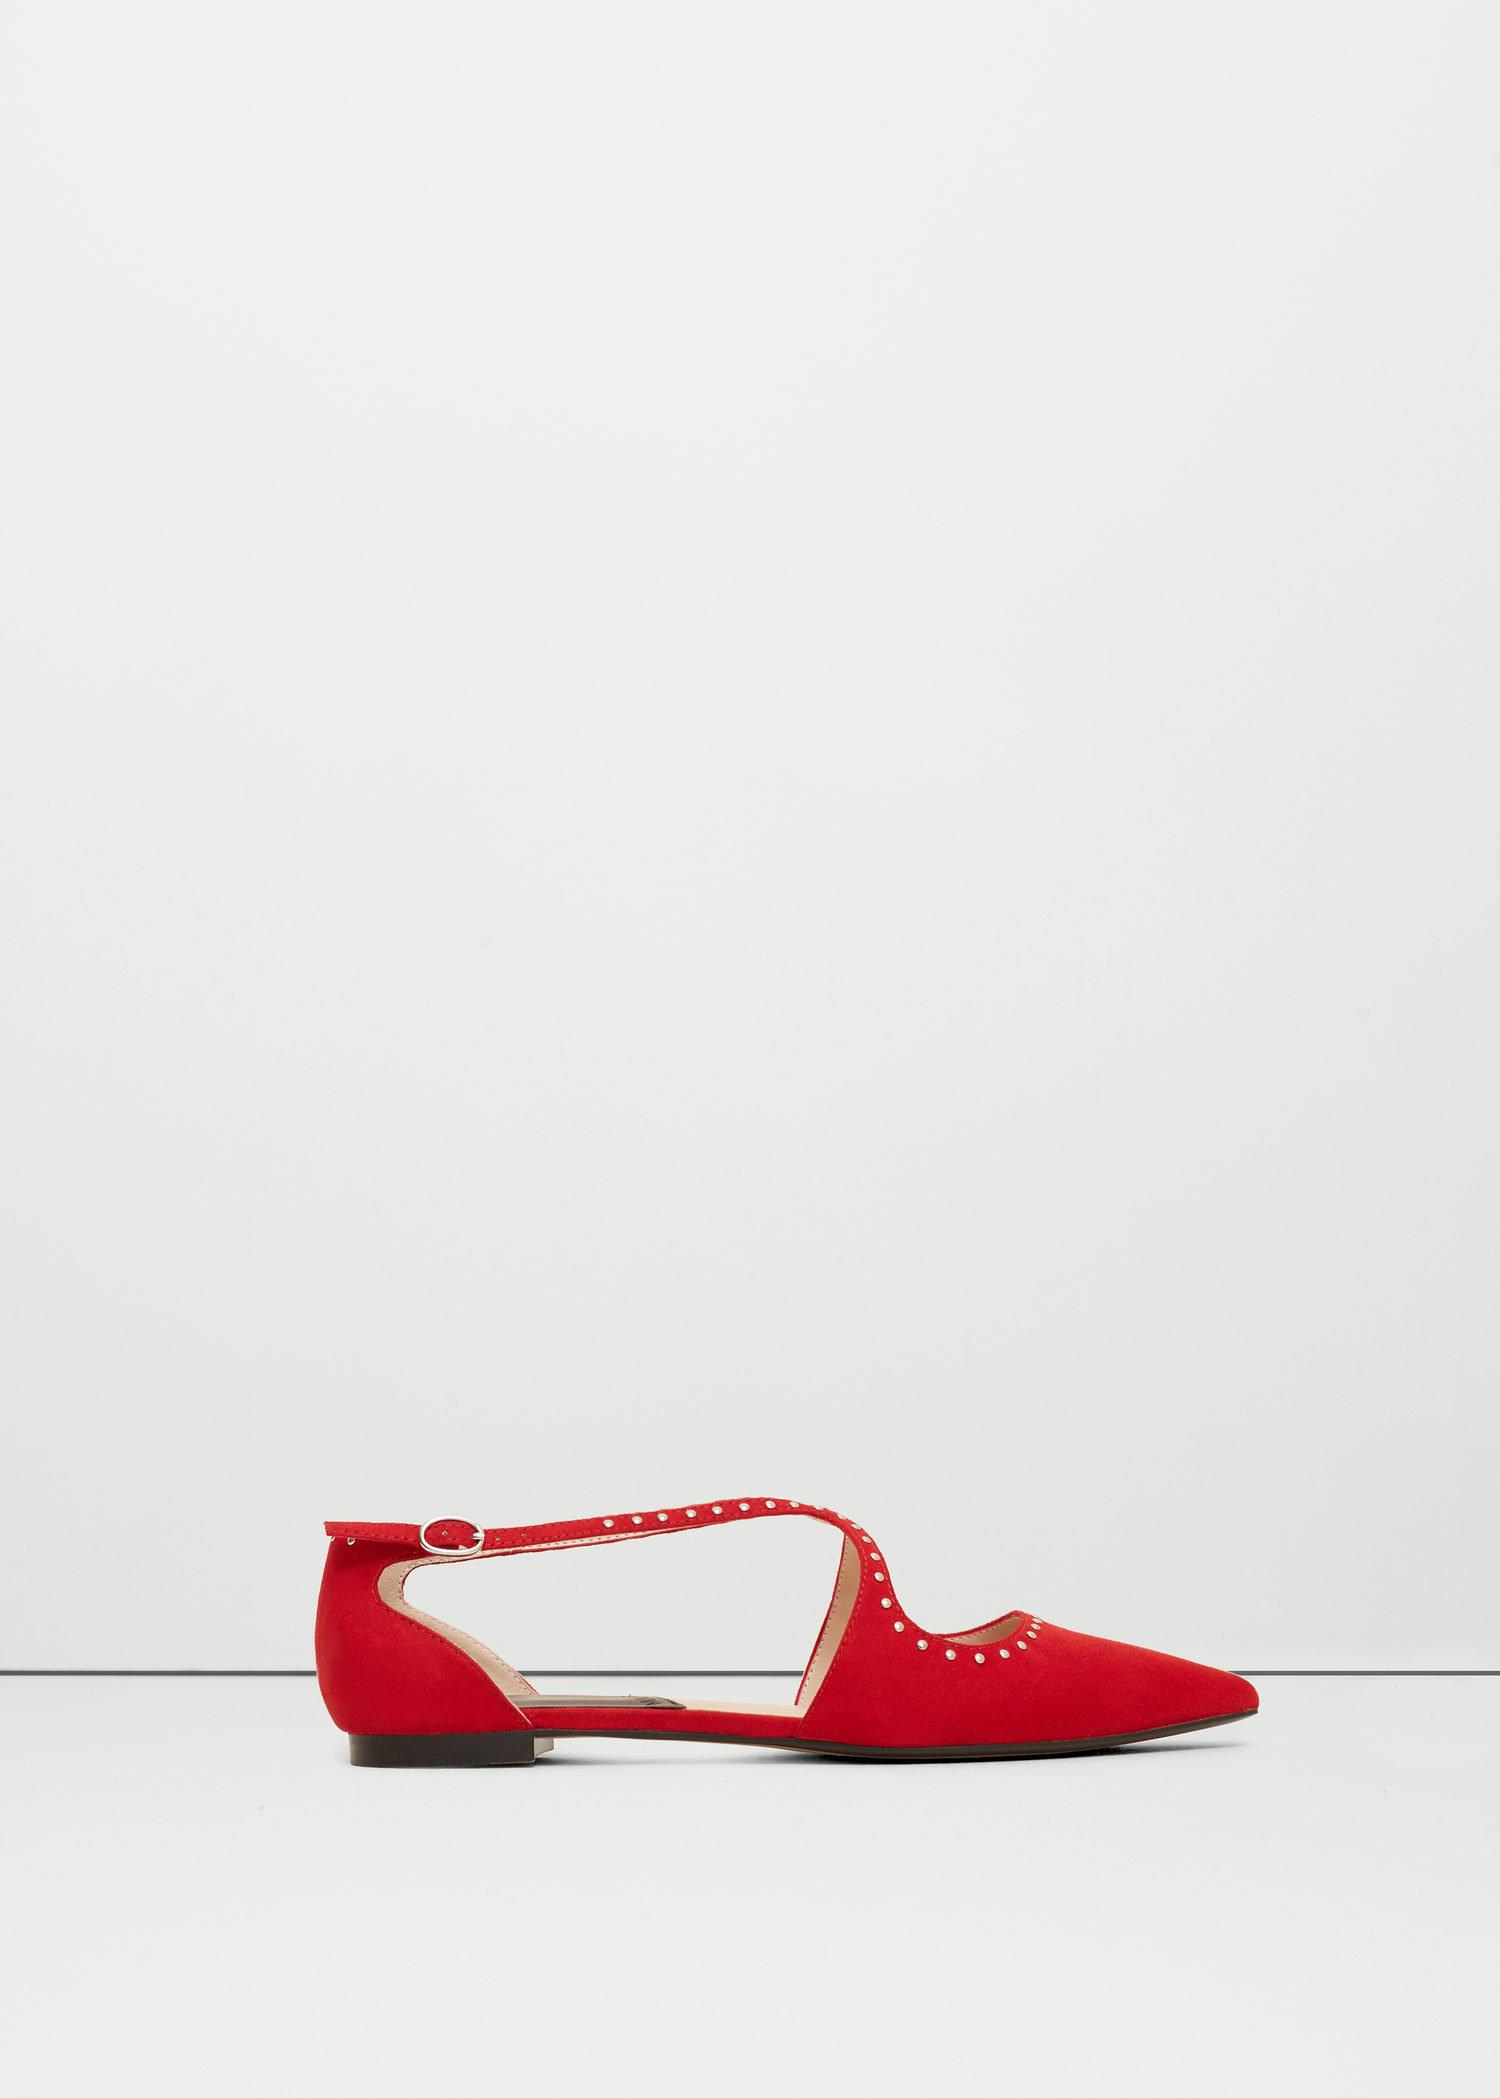 Mango Studded Flat Shoes In Red | Lyst